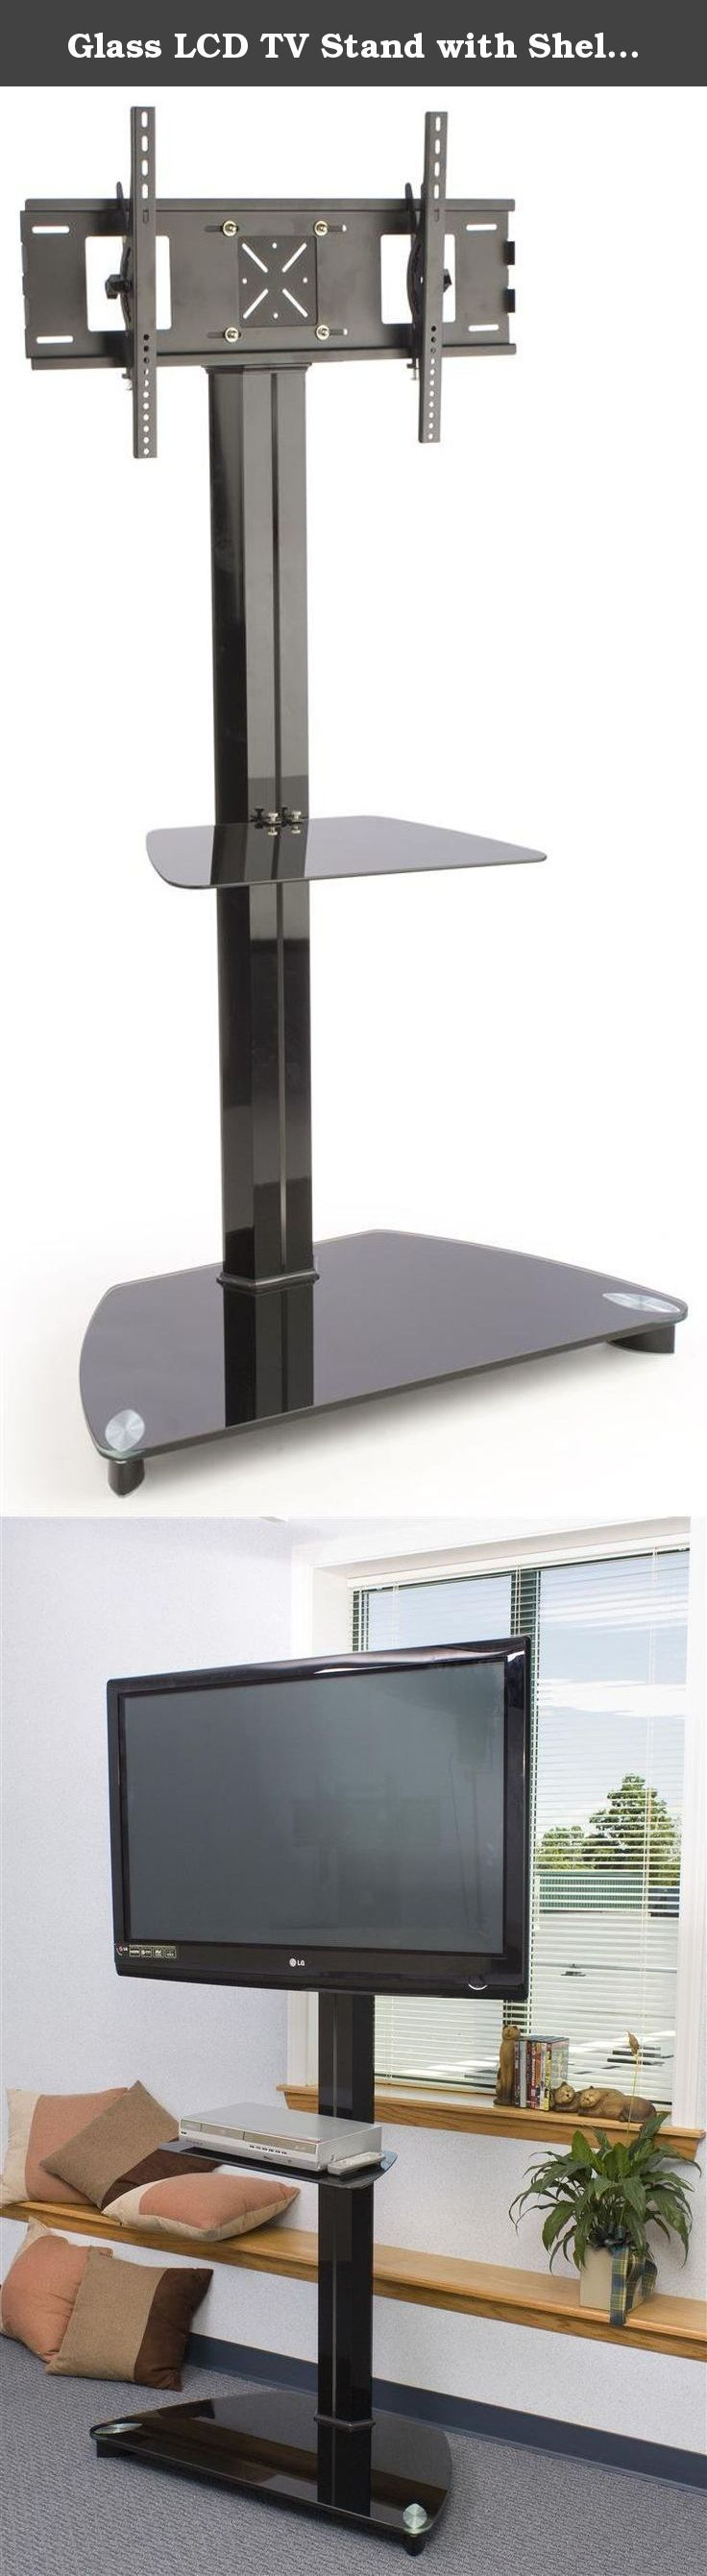 Lcd Stand Designs : Best ideas about lcd tv stand on pinterest low